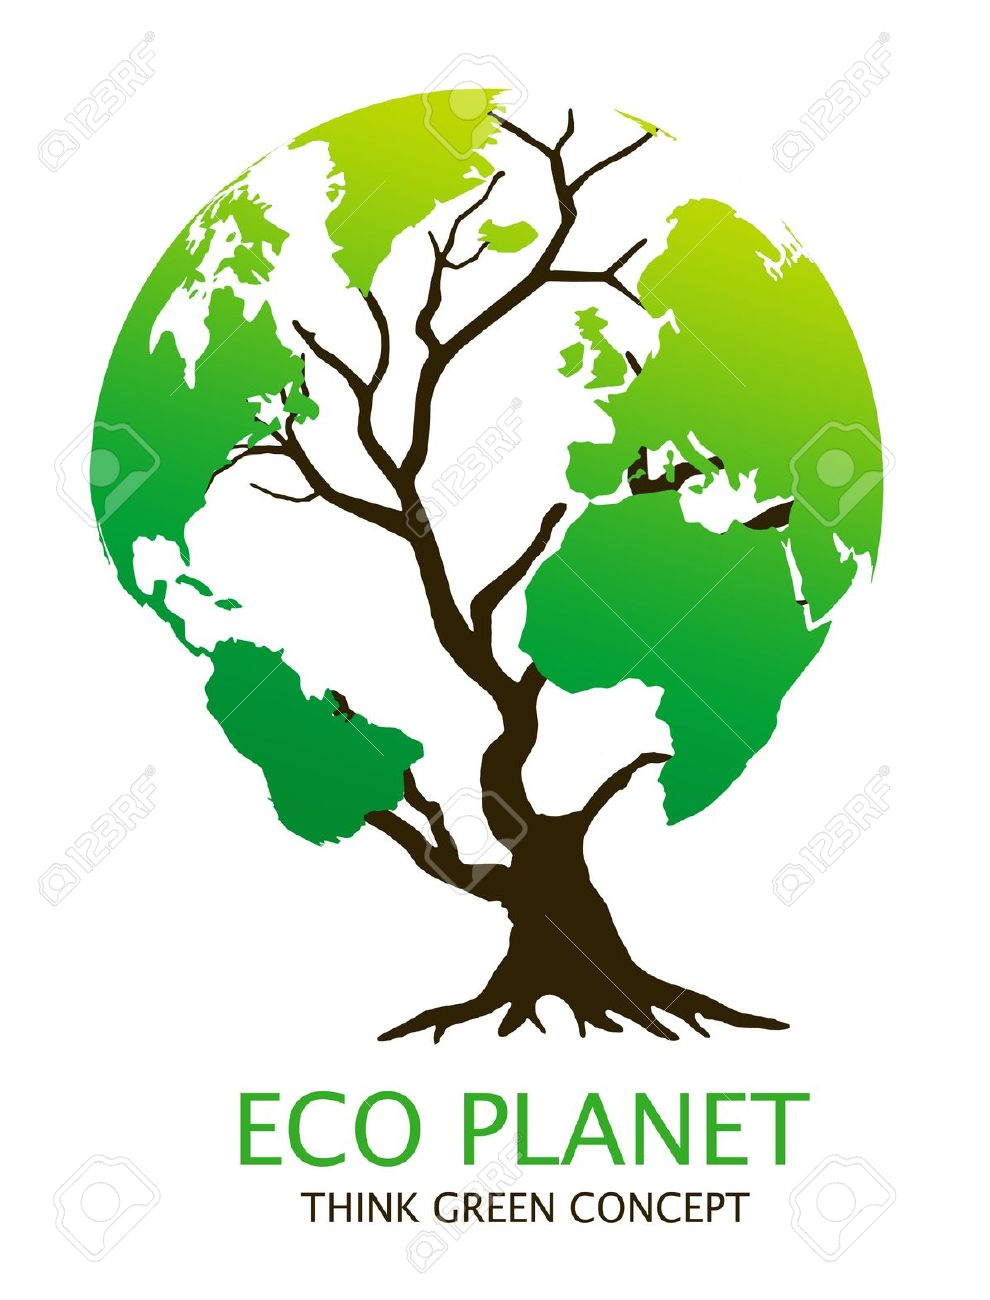 Eco-friendly &quot,earth tree&quot, illustration. Green environment concept Stock Illustration - 11096171